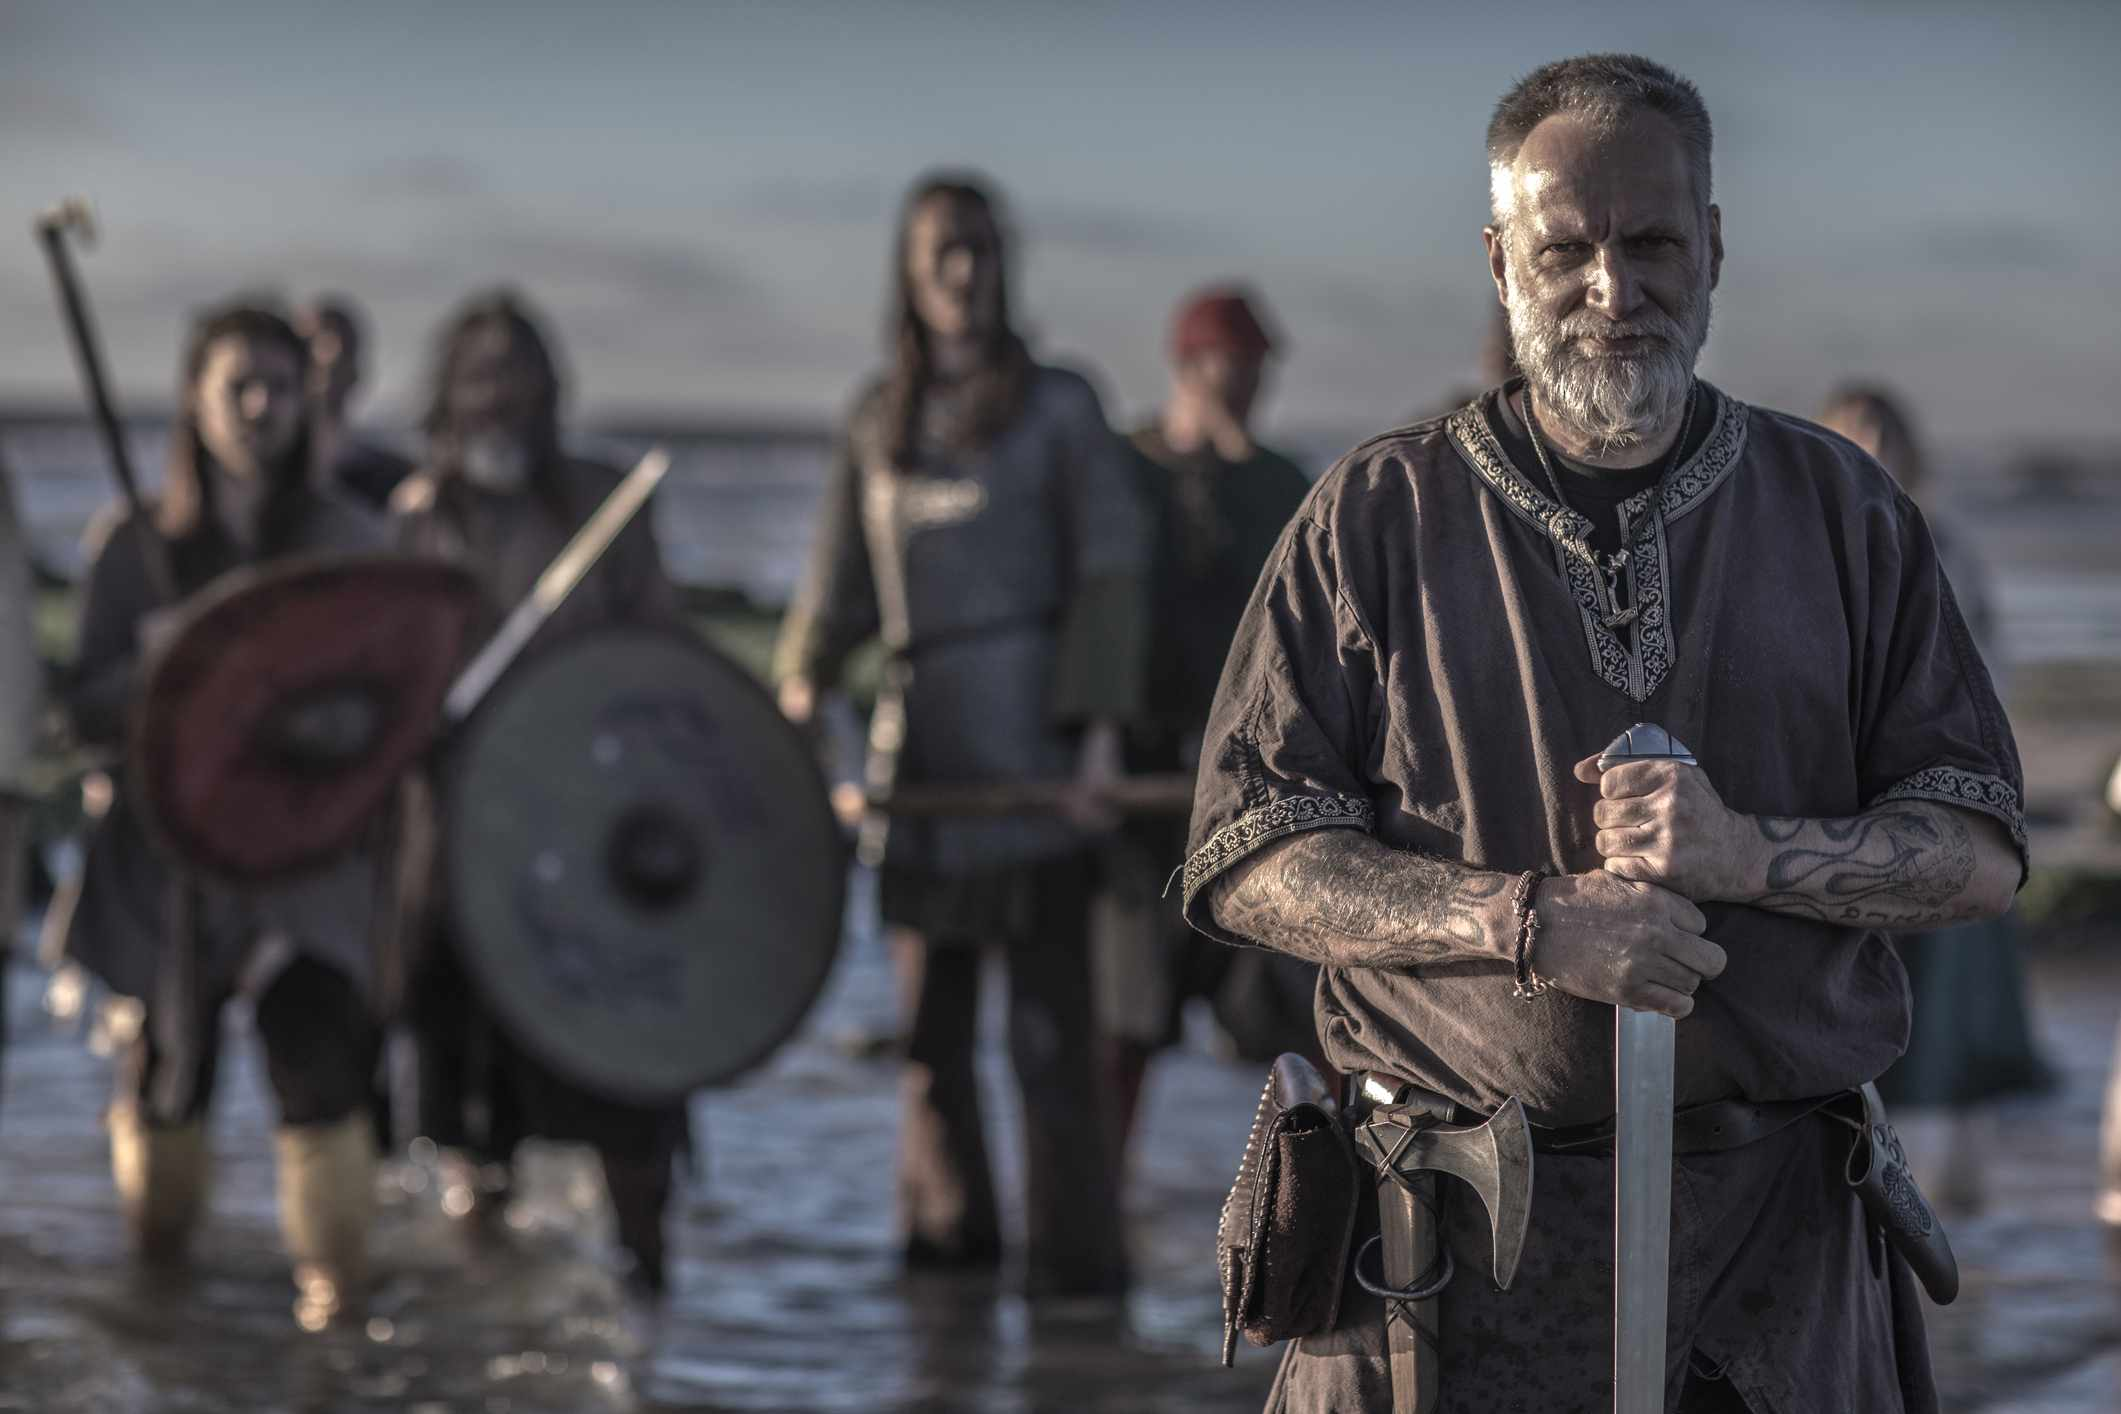 A individual viking warrior in front of a hoard of Weapon wielding warriors in the sea